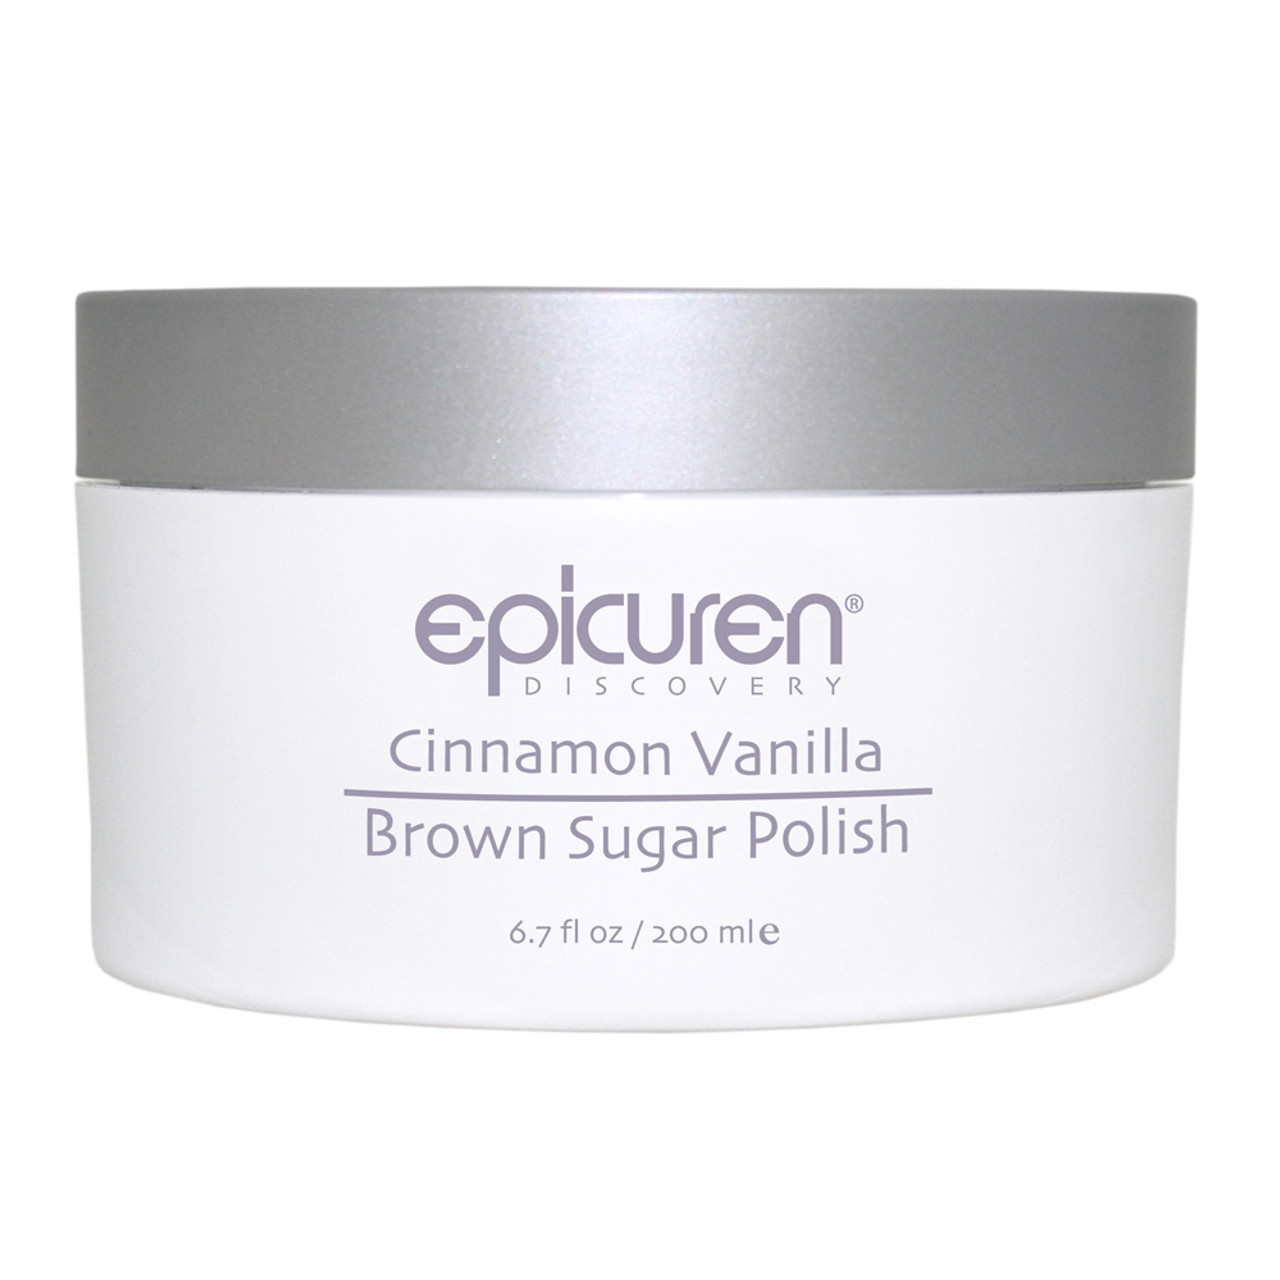 epicuren Discovery Cinnamon Vanilla Brown Sugar Body Polish